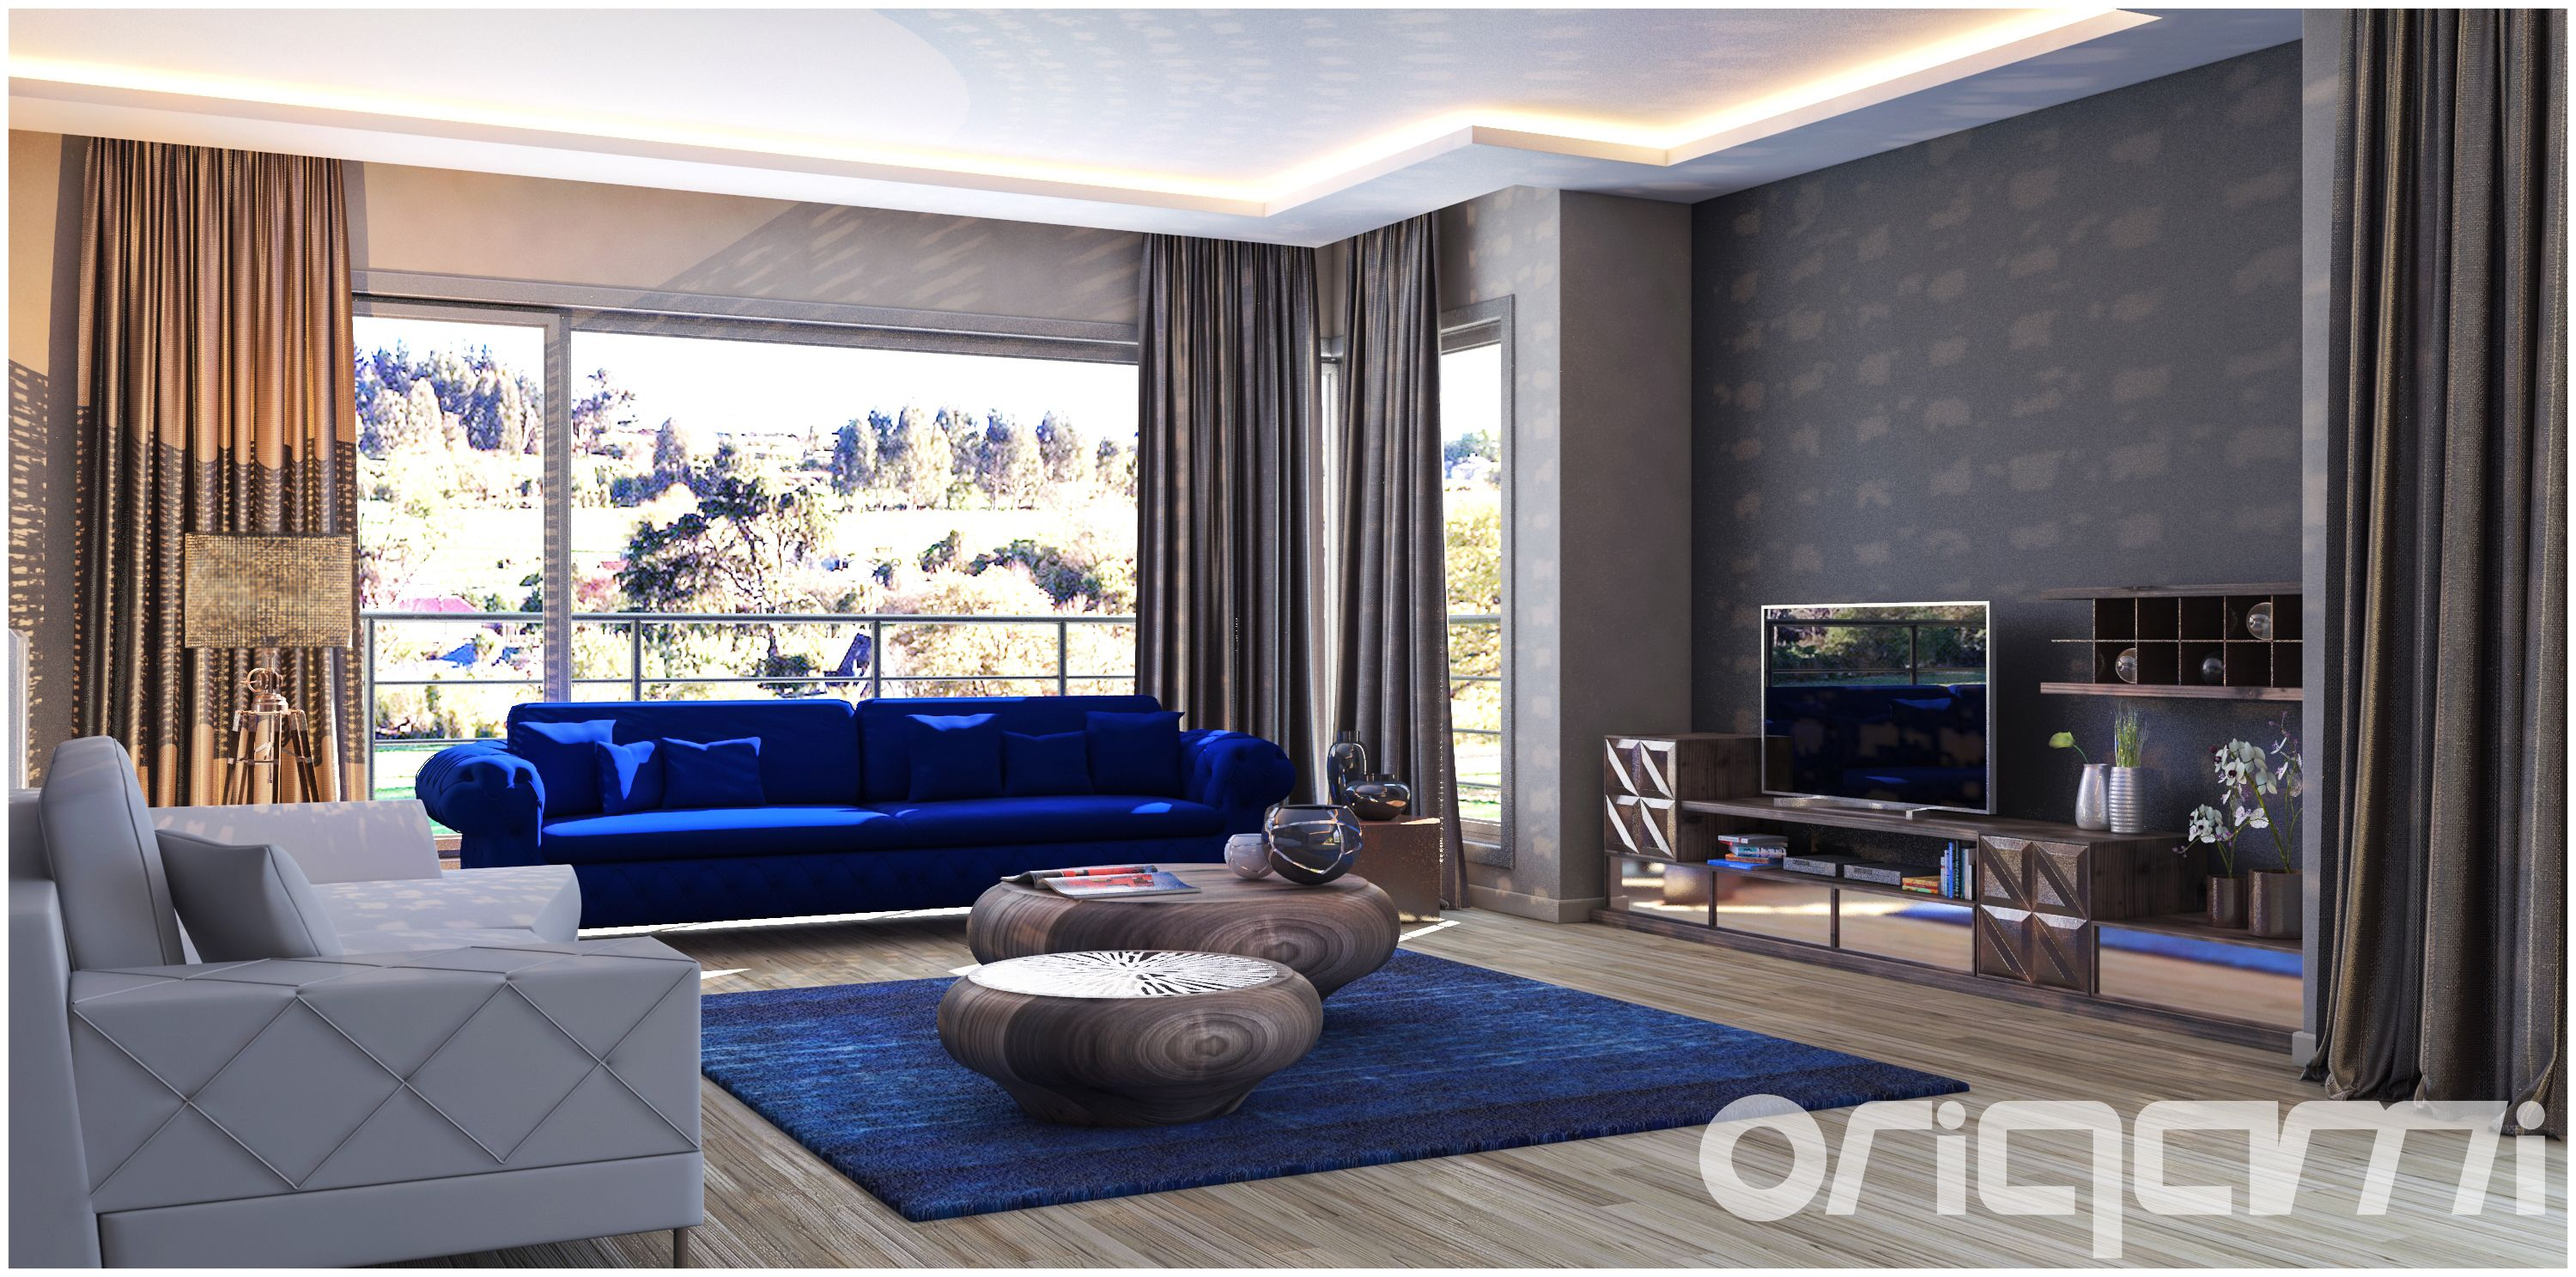 Royal Blue Bedroom Dream Living Rooms Luxurious Bedrooms